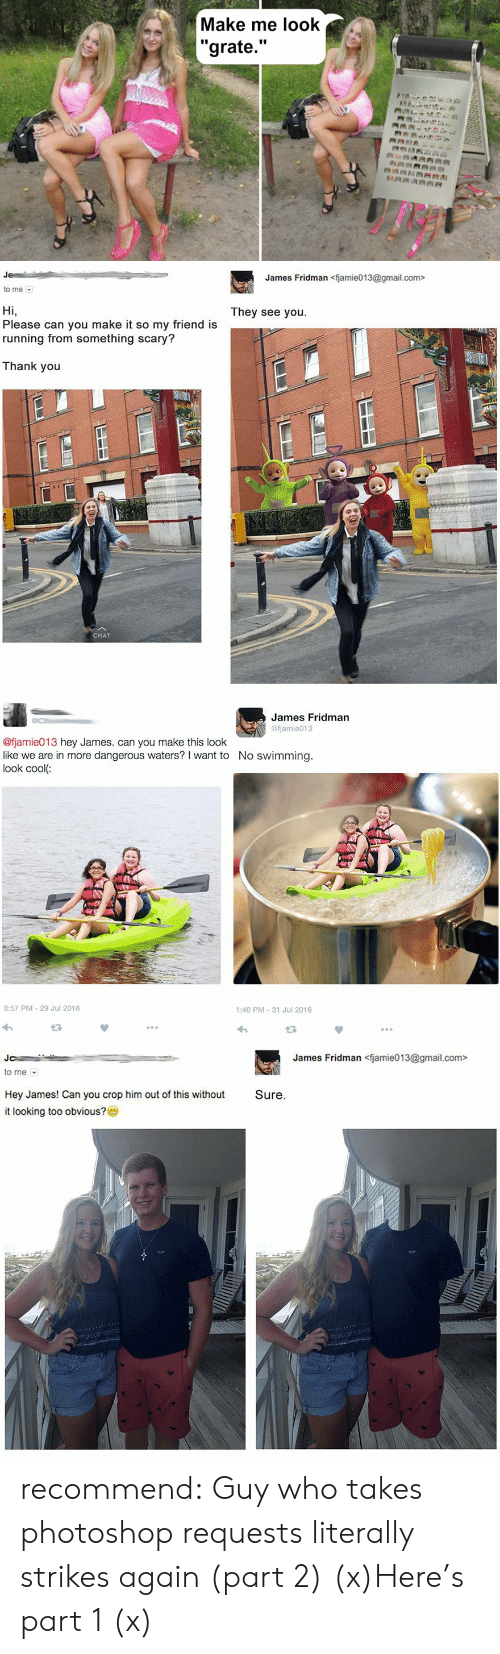 """Photoshop, Target, and Tumblr: Make me look  """"grate.""""  ANA  RRARRAA   James Fridman <fjamie013@gmail.com>  to me  They see you  Hi,  Please can you make it so my friend is  running from something scary?  Thank you  CHAT   James Fridman  @fjamie013  @fjamie013 hey James. can you make this look  like we are in more dangerous waters? I want to  look cool:  No swimming.  8:57 PM 29 Jul 2016  1:40 PM 31 Jul 2016   James Fridman<fjamie013@gmail.com>  Jo  to me  Hey James! Can you crop him out of this without  Sure.  it looking too obvious?0 recommend:  Guy who takes photoshop requests literally strikes again (part 2) (x)Here's part 1 (x)"""